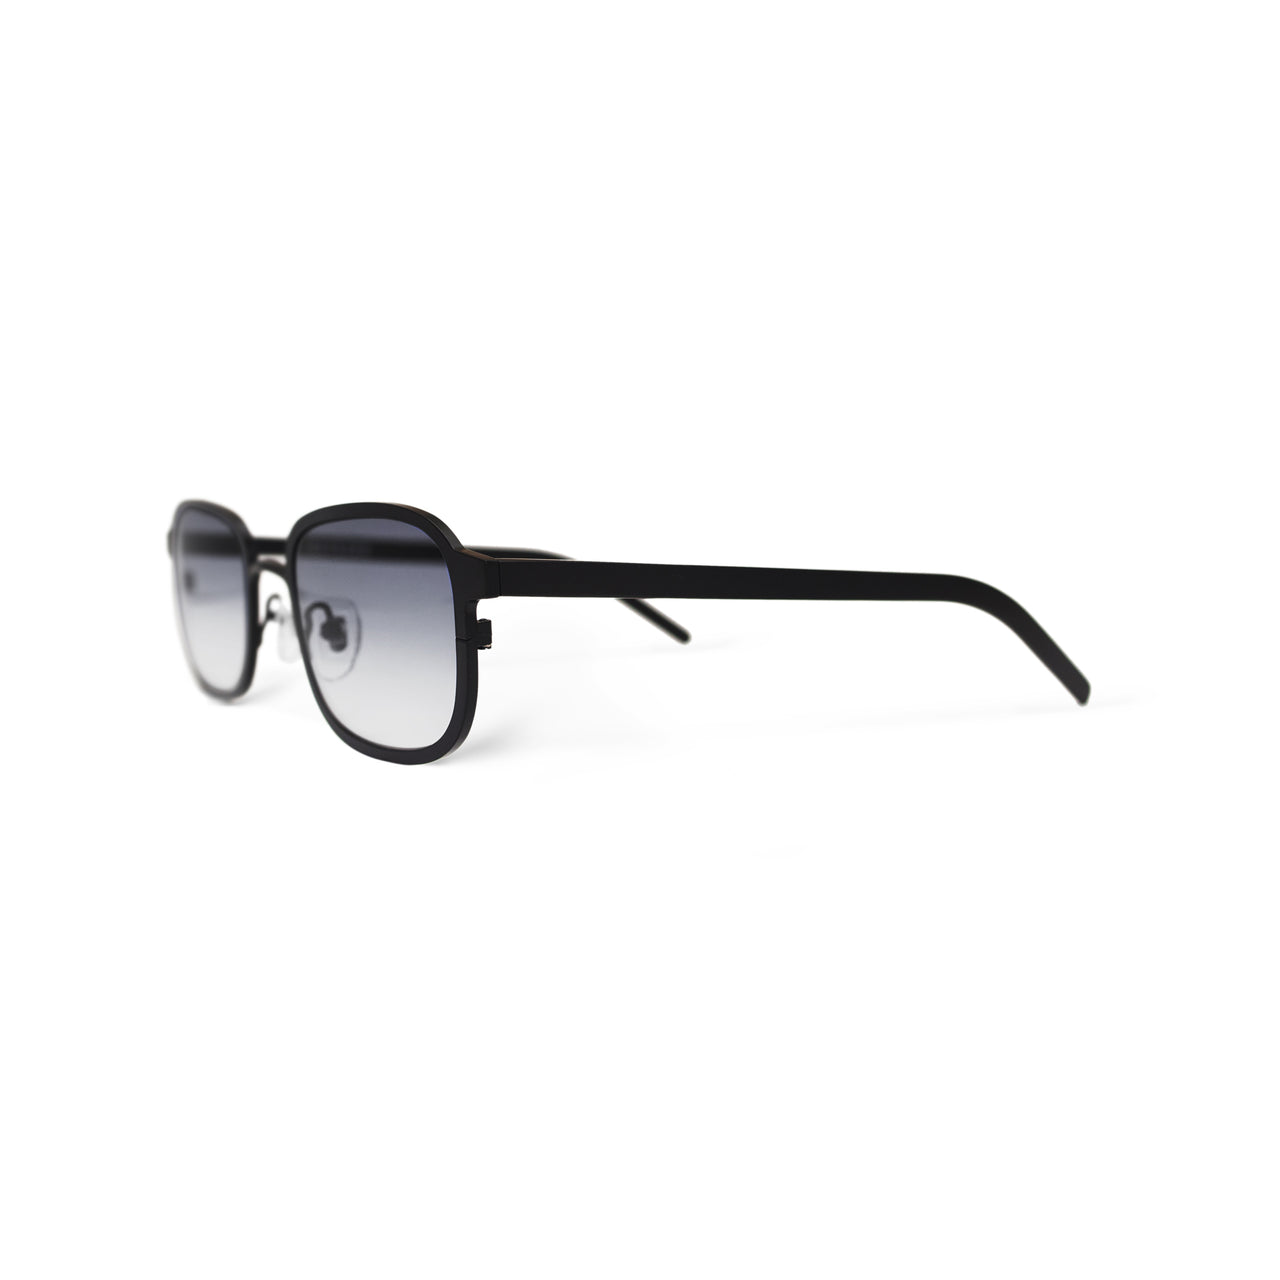 Metal. Gloss Black. Smoke Lens. - BLYSZAK eyewear eyewear - eyewear, optical, sunglasses